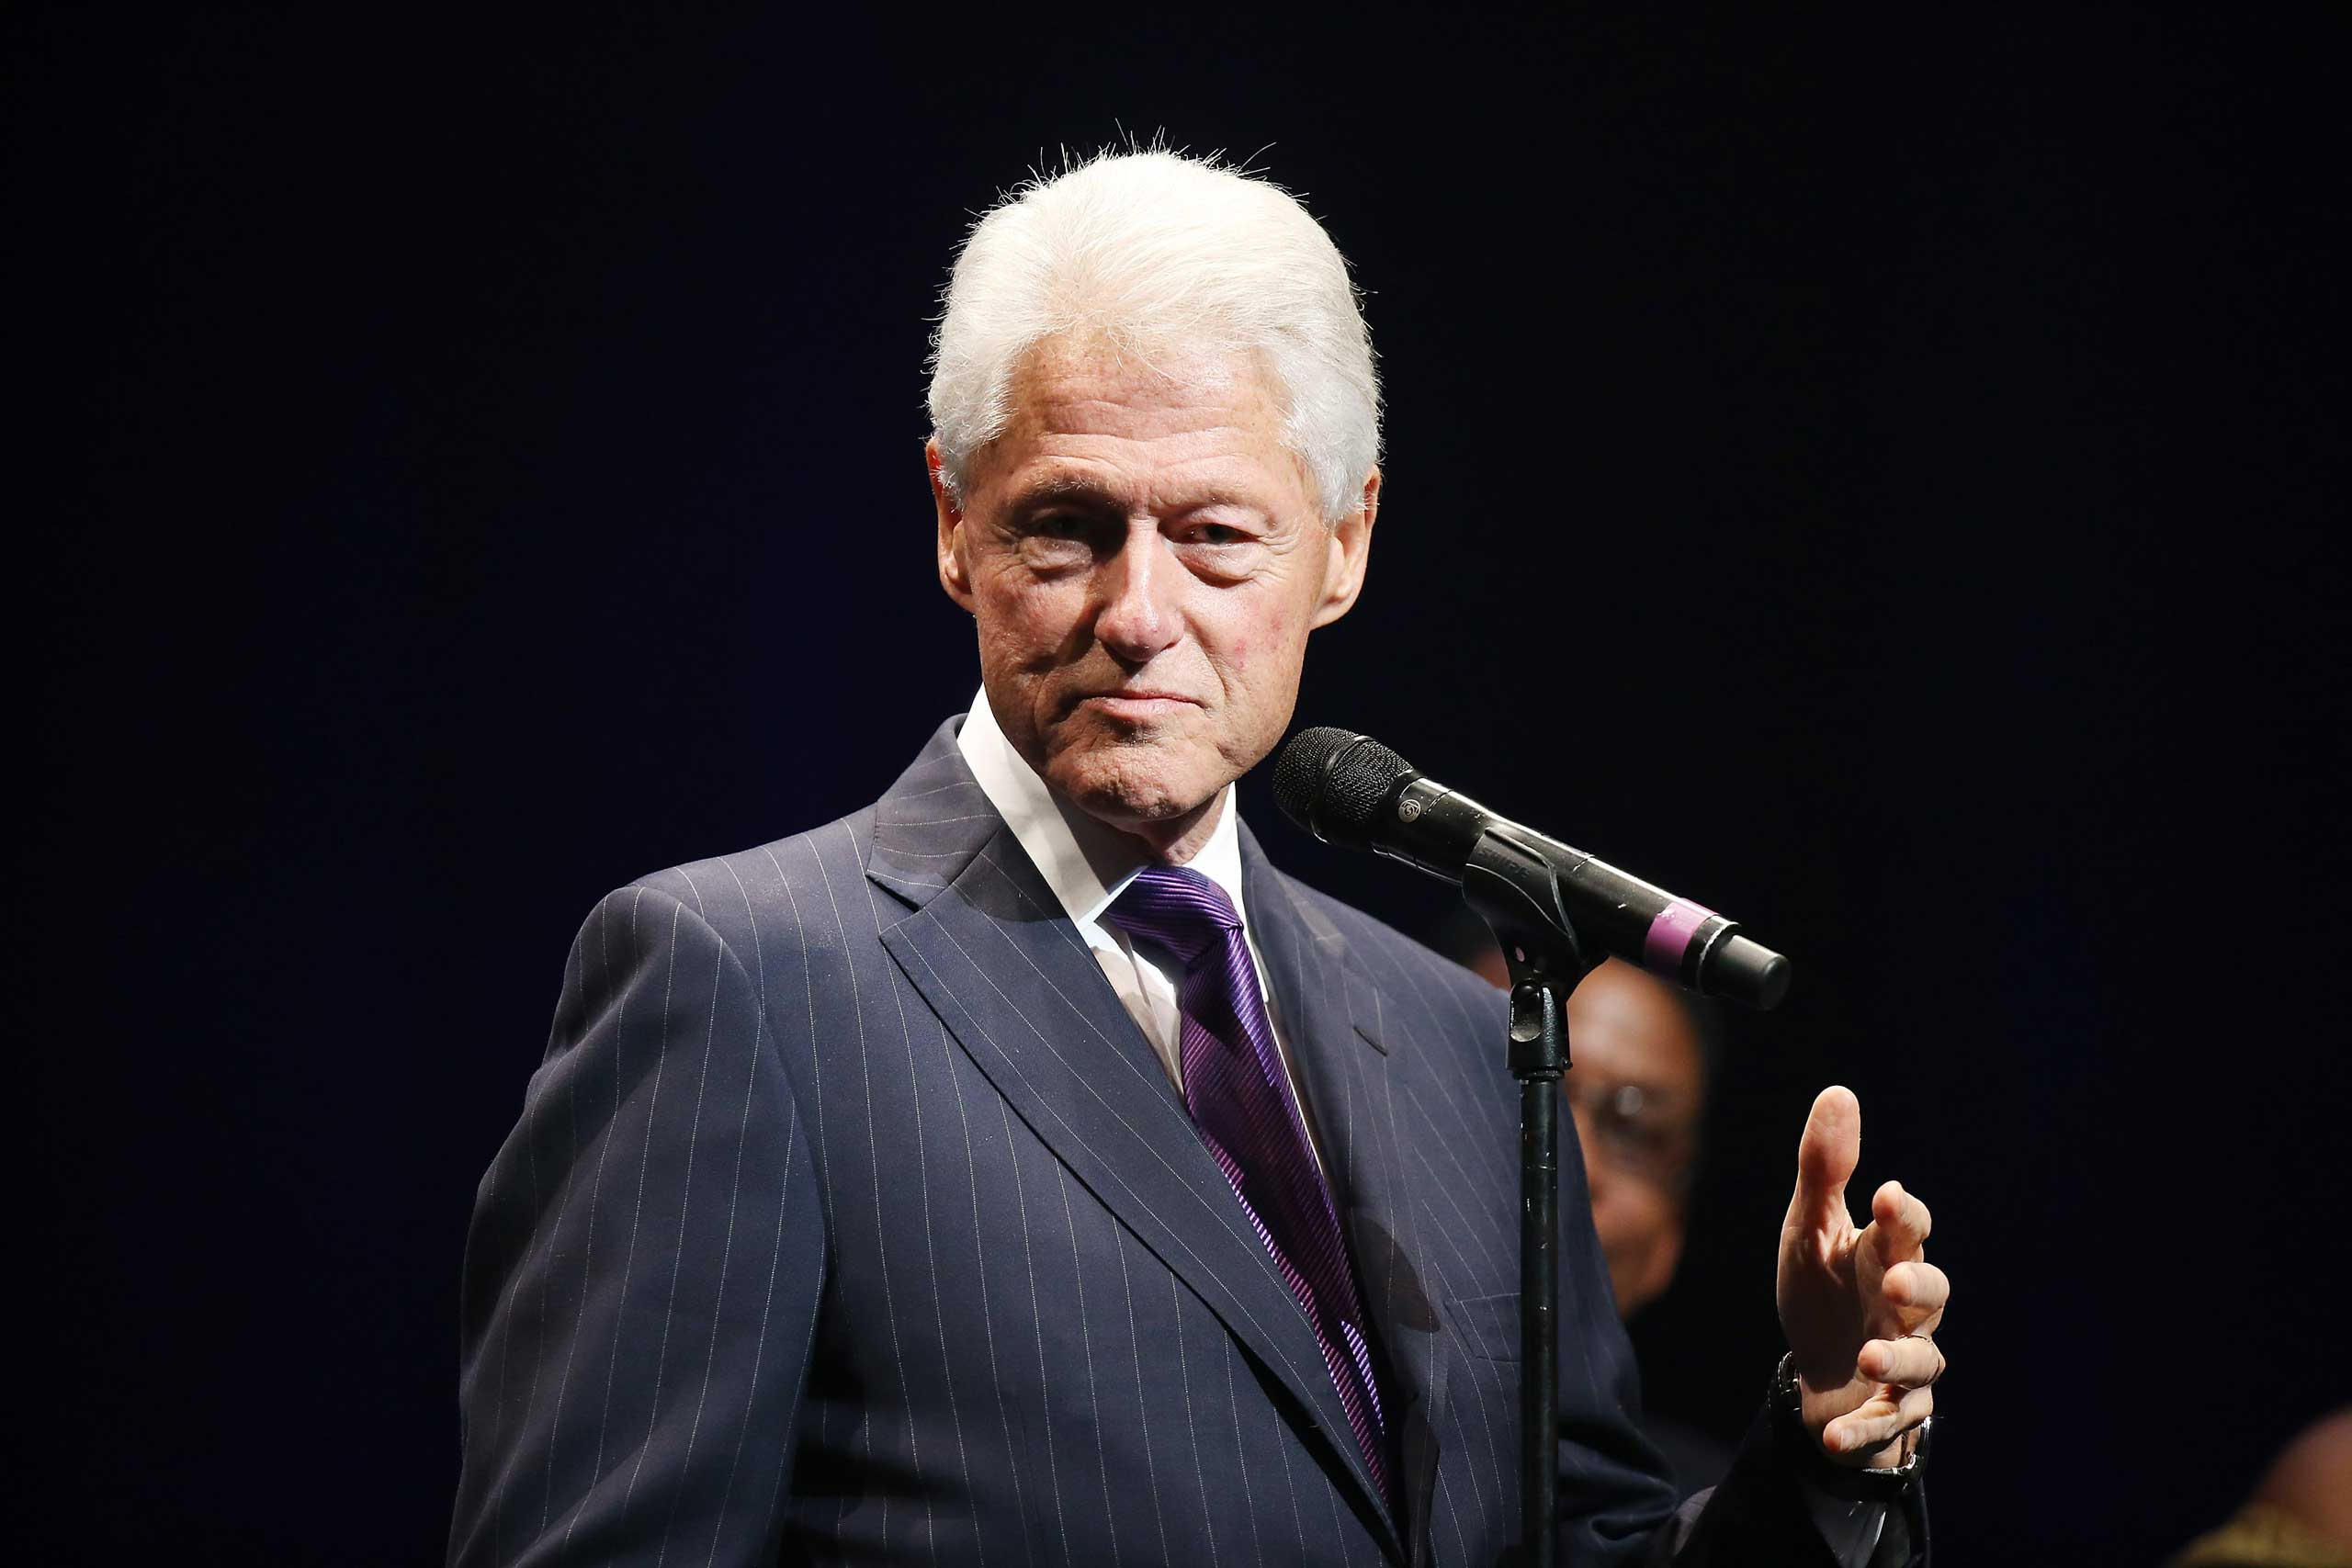 Bill Clinton speaks onstage during The Thelonius Monk Jazz Trumpet Competition and All Star Gala concert held at Dolby Theatre in Hollywood, Calif. on Nov. 9, 2014.